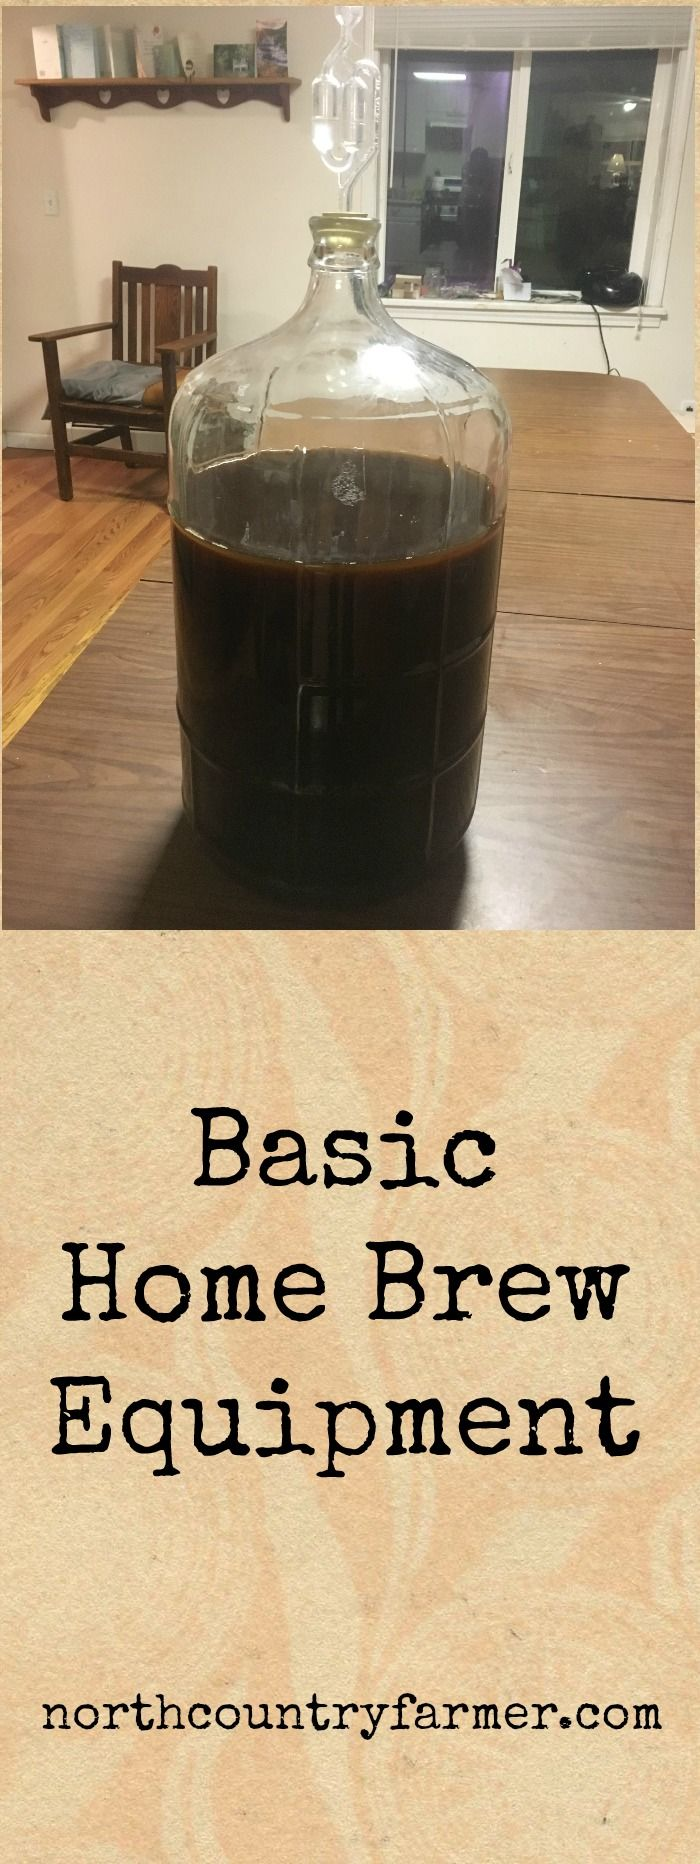 Making your own beer or wine at home is not very difficult. With this basic brewing equipment you can easily make for your first 5 gallon batch.